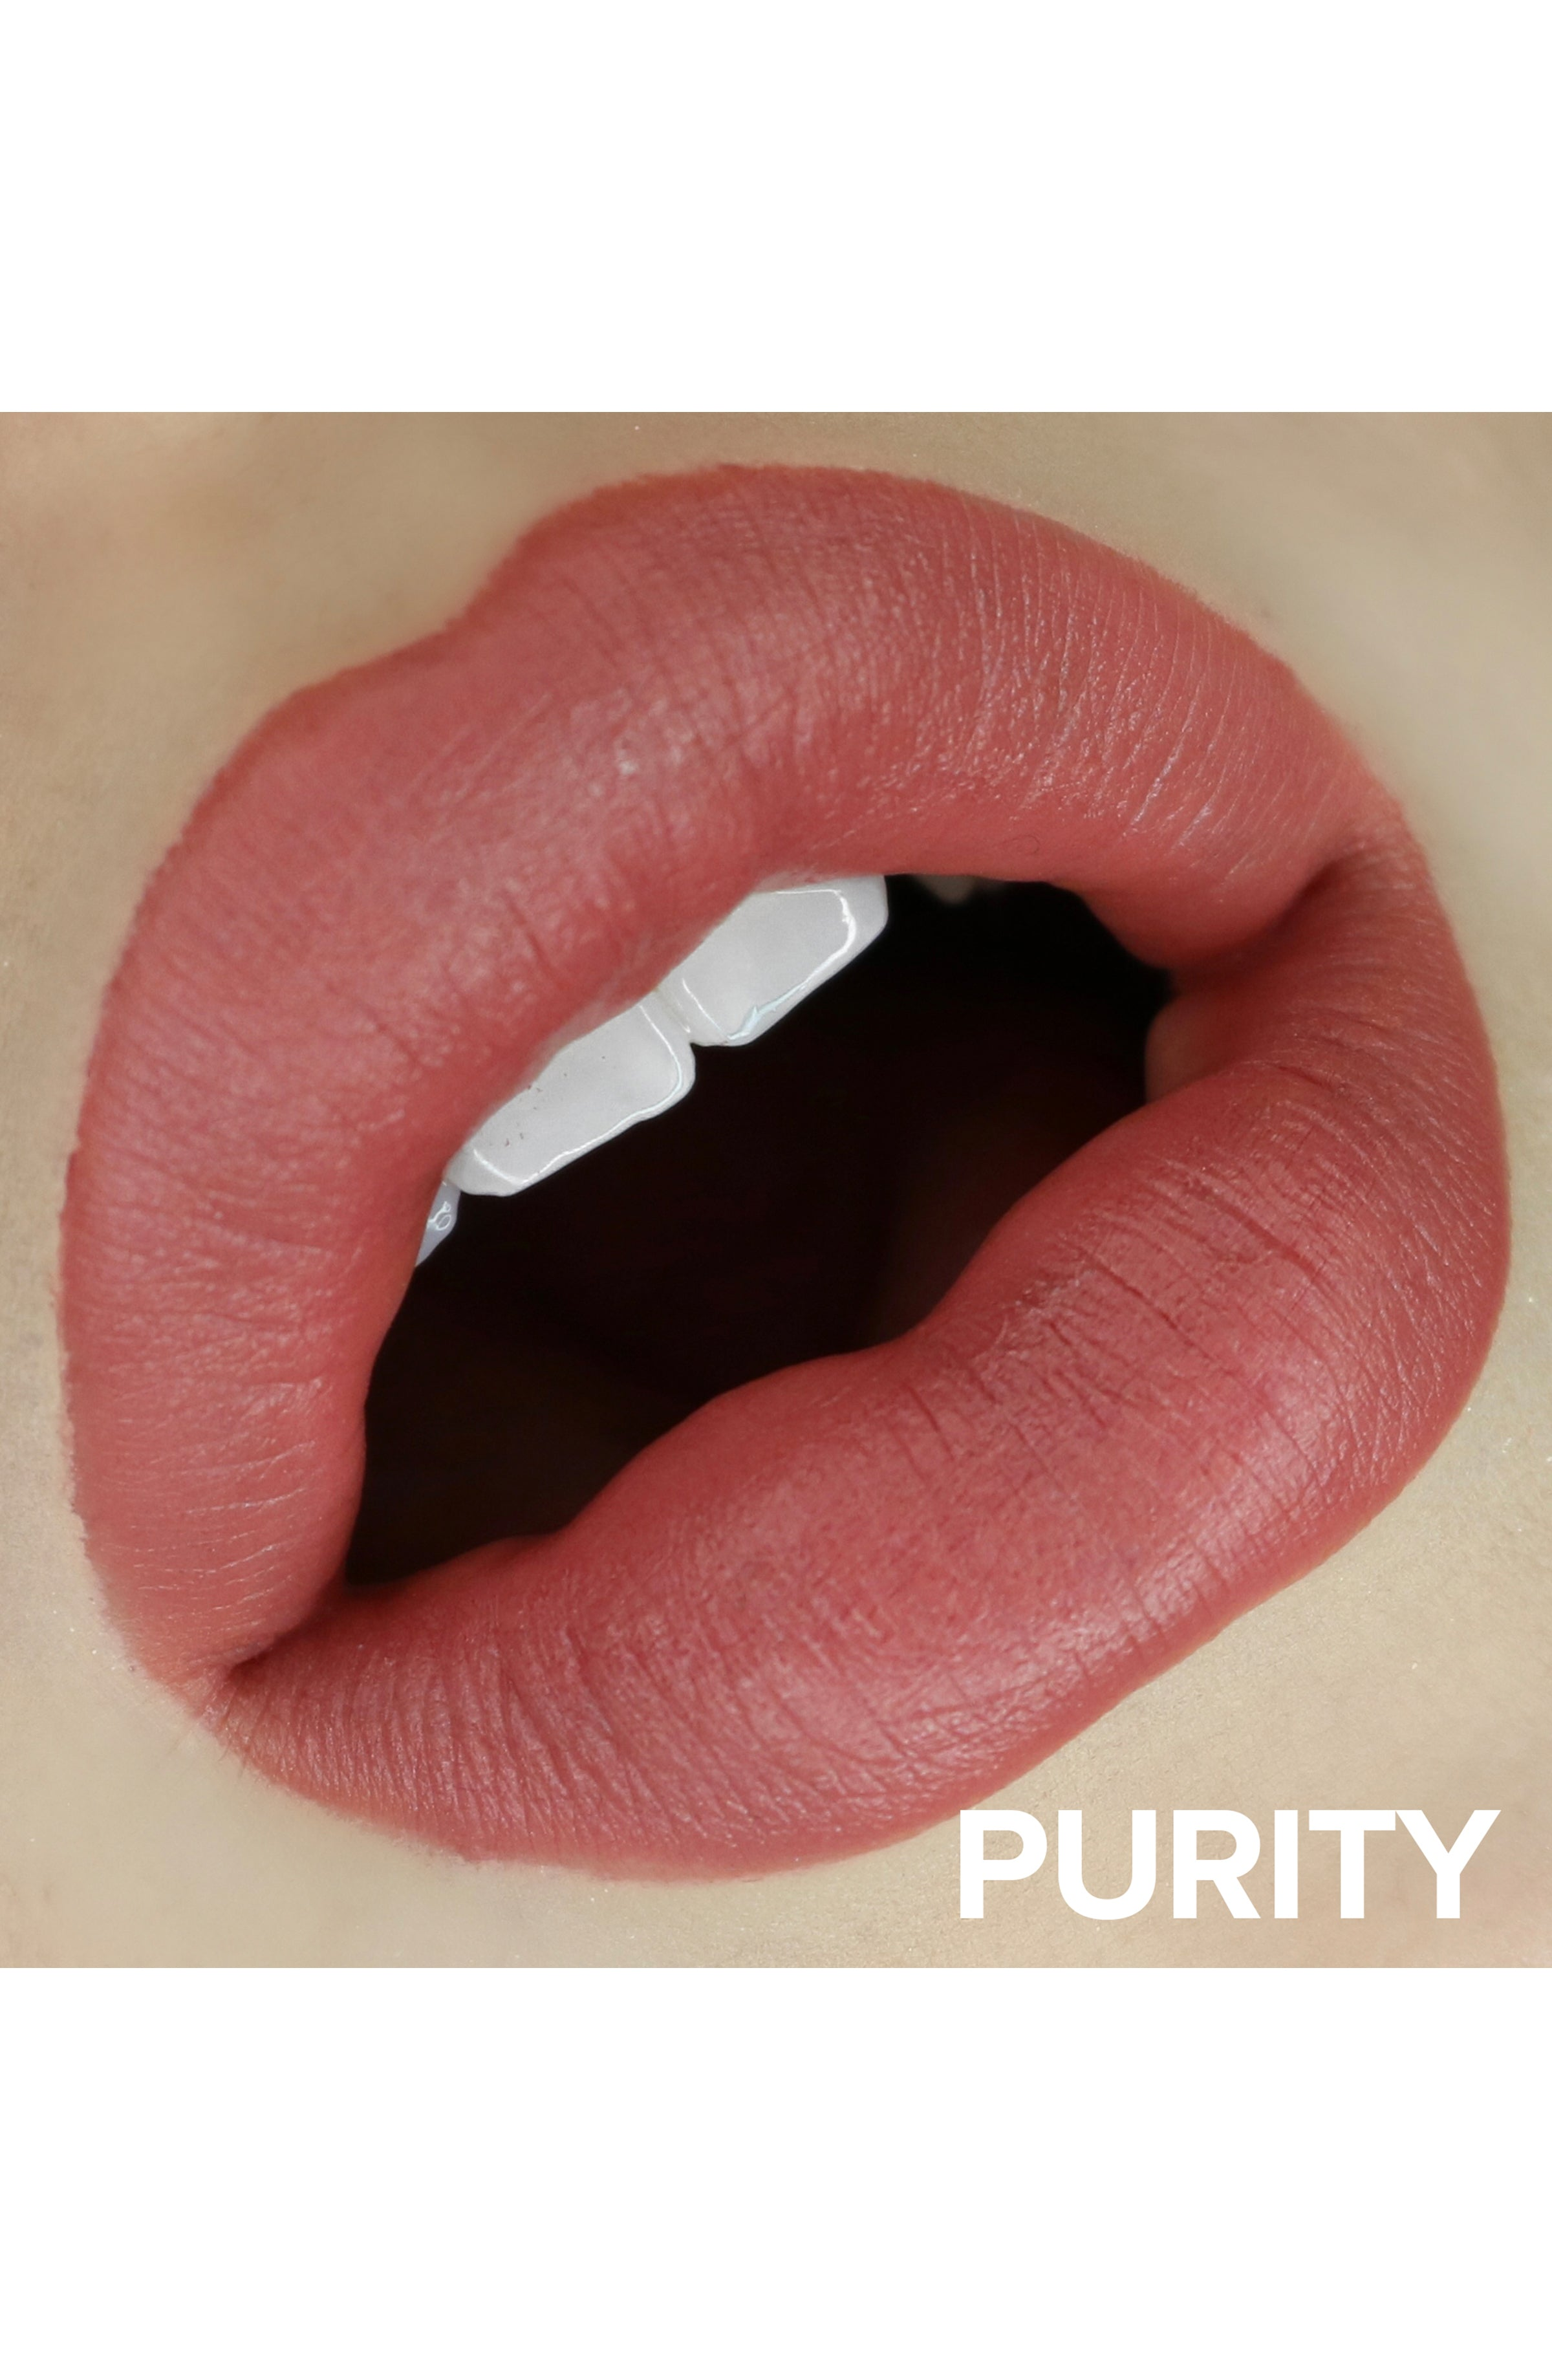 intense matte lip + cheek in purity